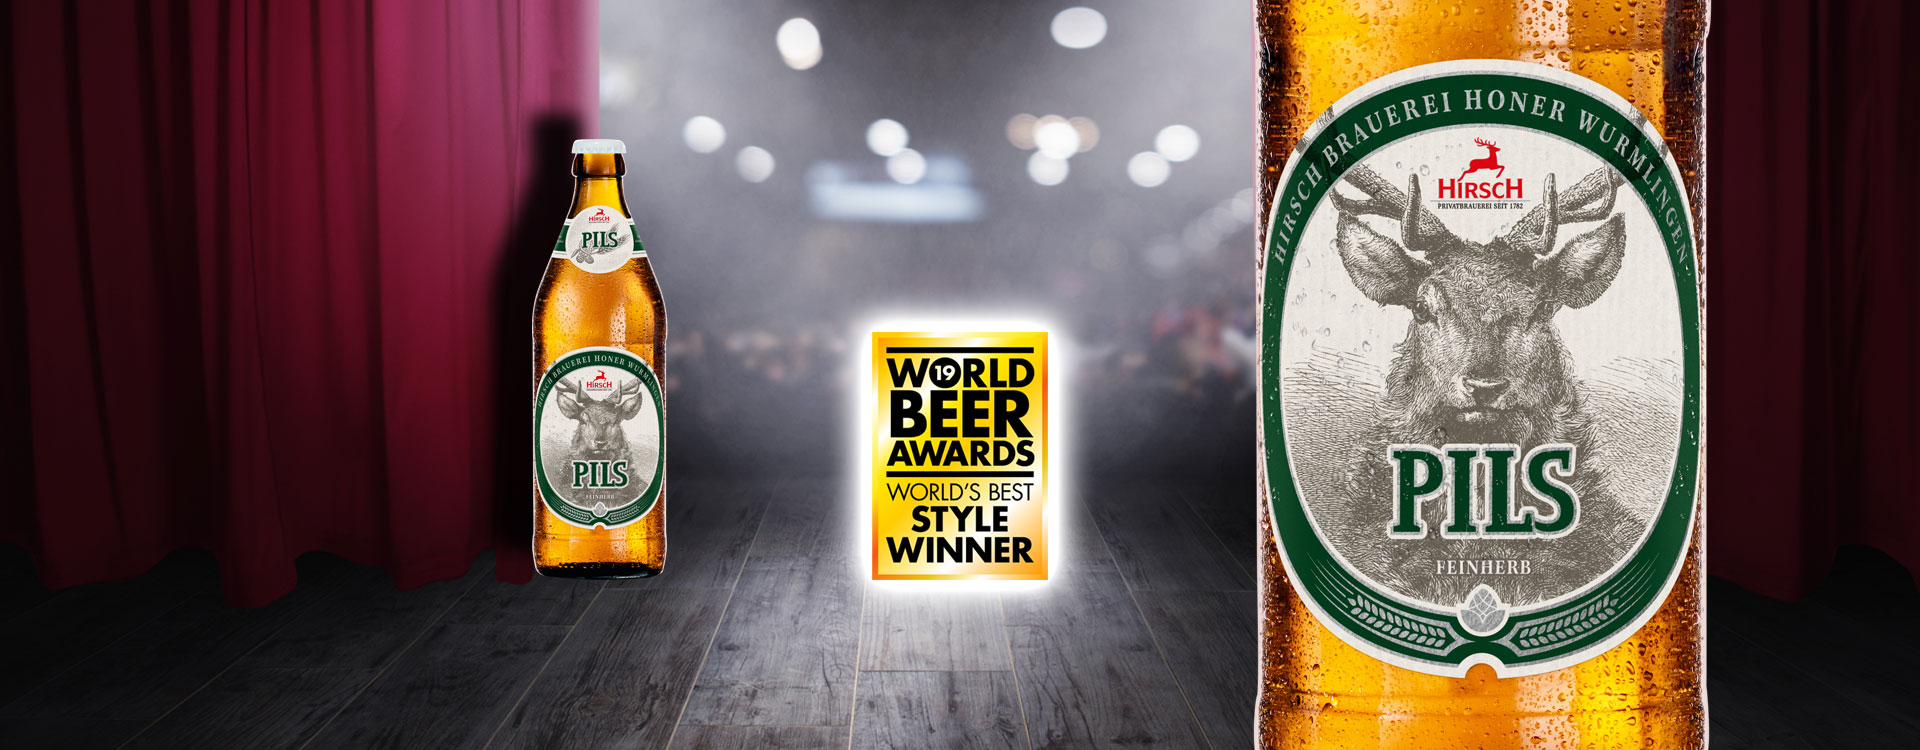 Pils Word Beer Awards